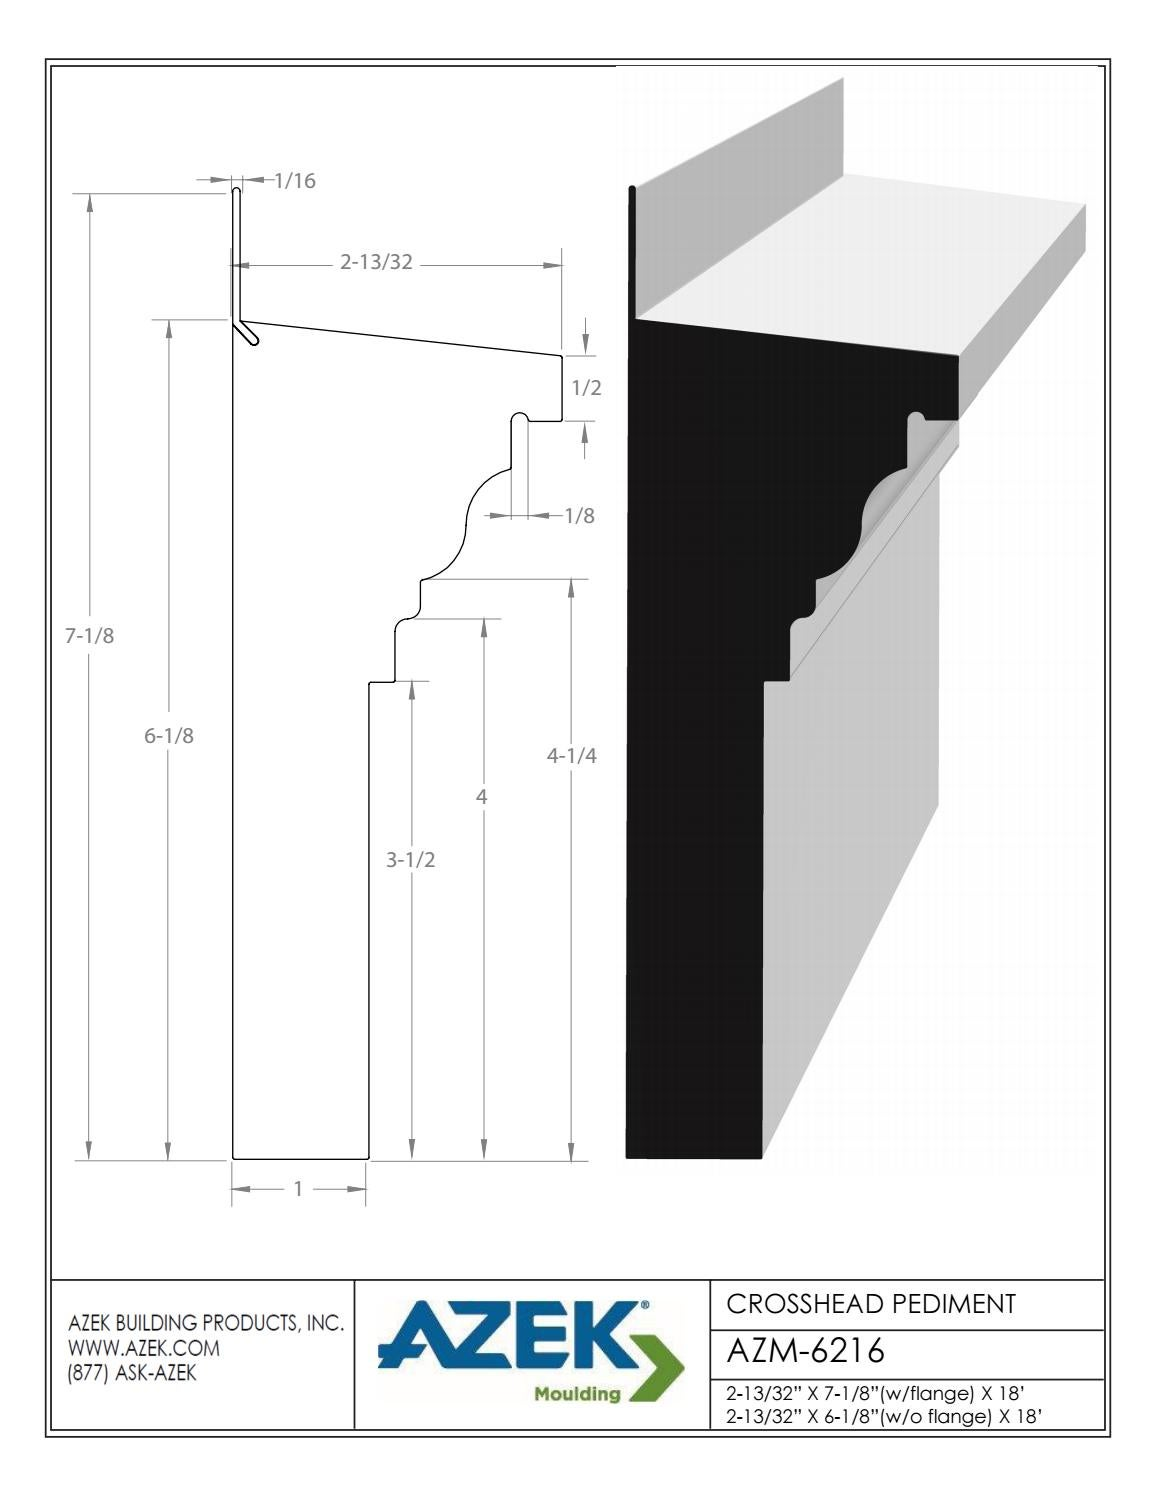 Azek Moulding Crosshead Pediment AZM 6216 Specifications by